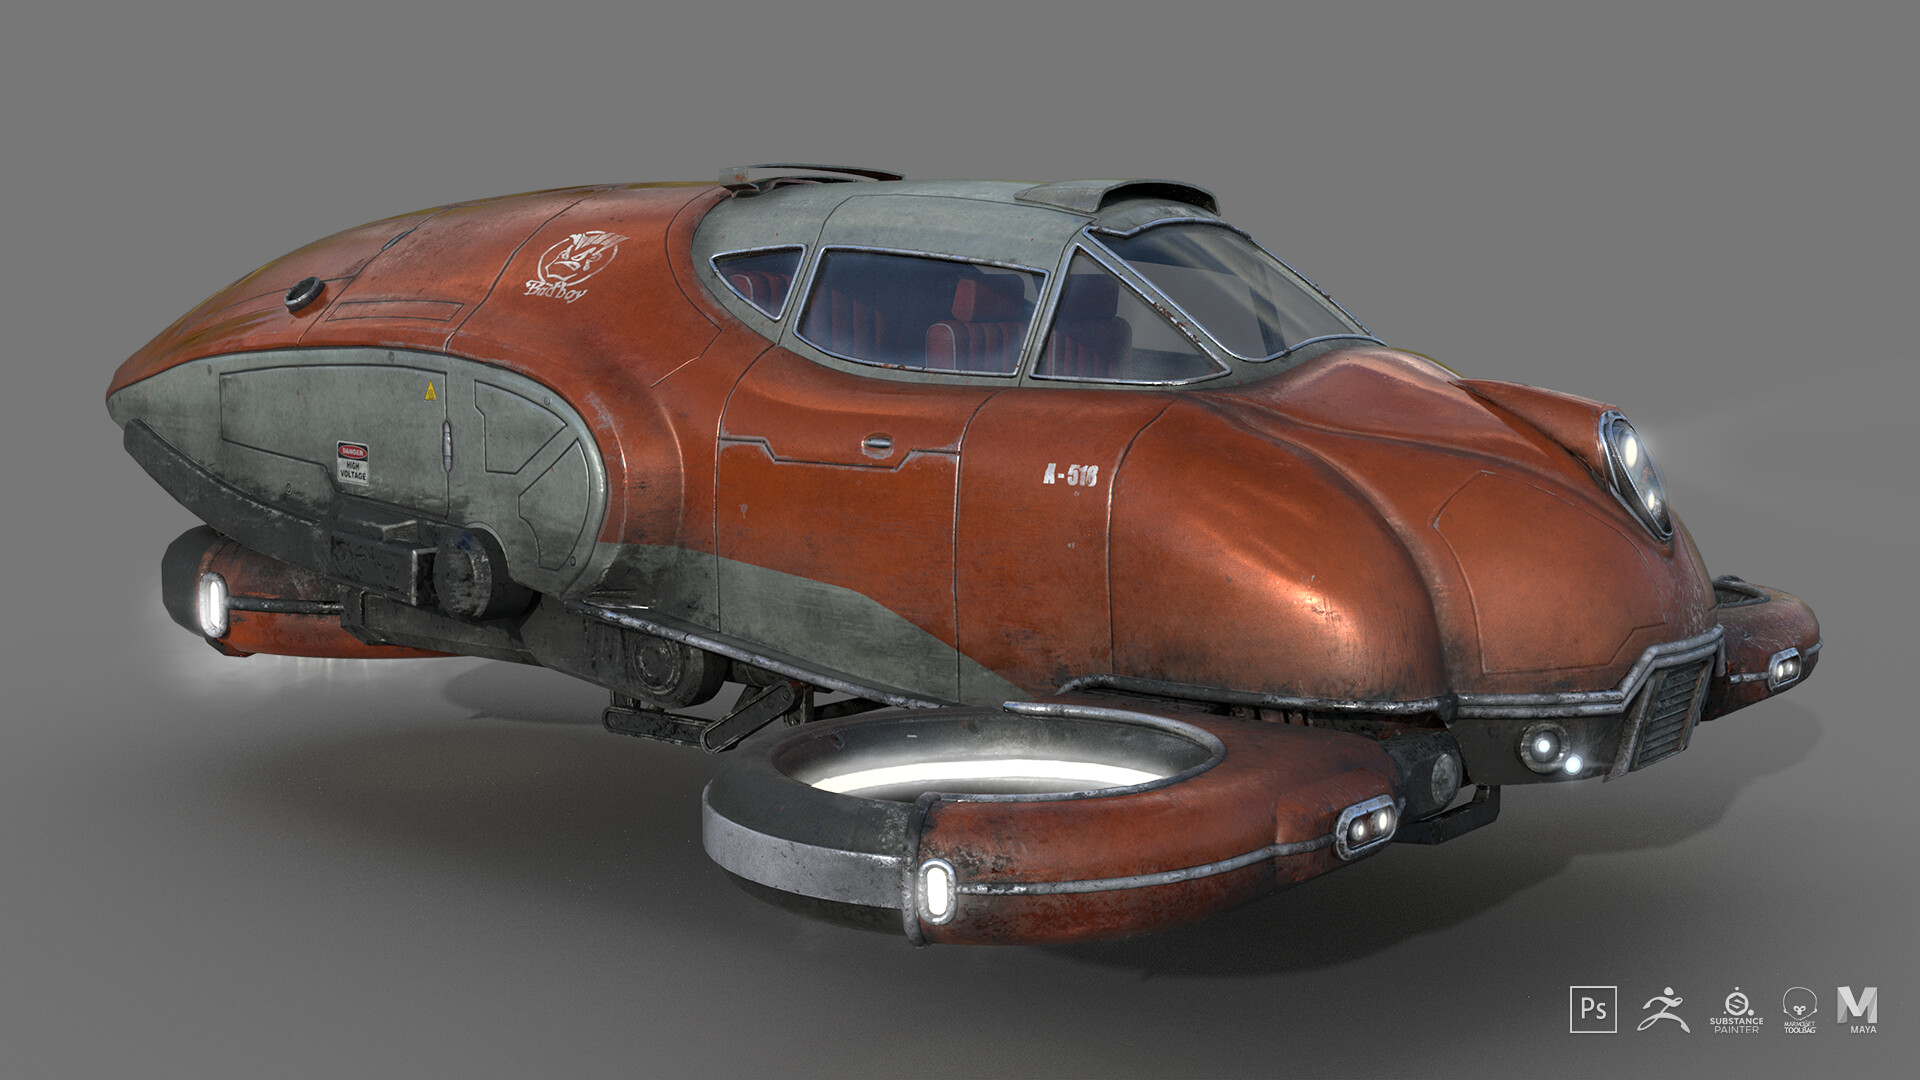 Jakub m scifi car